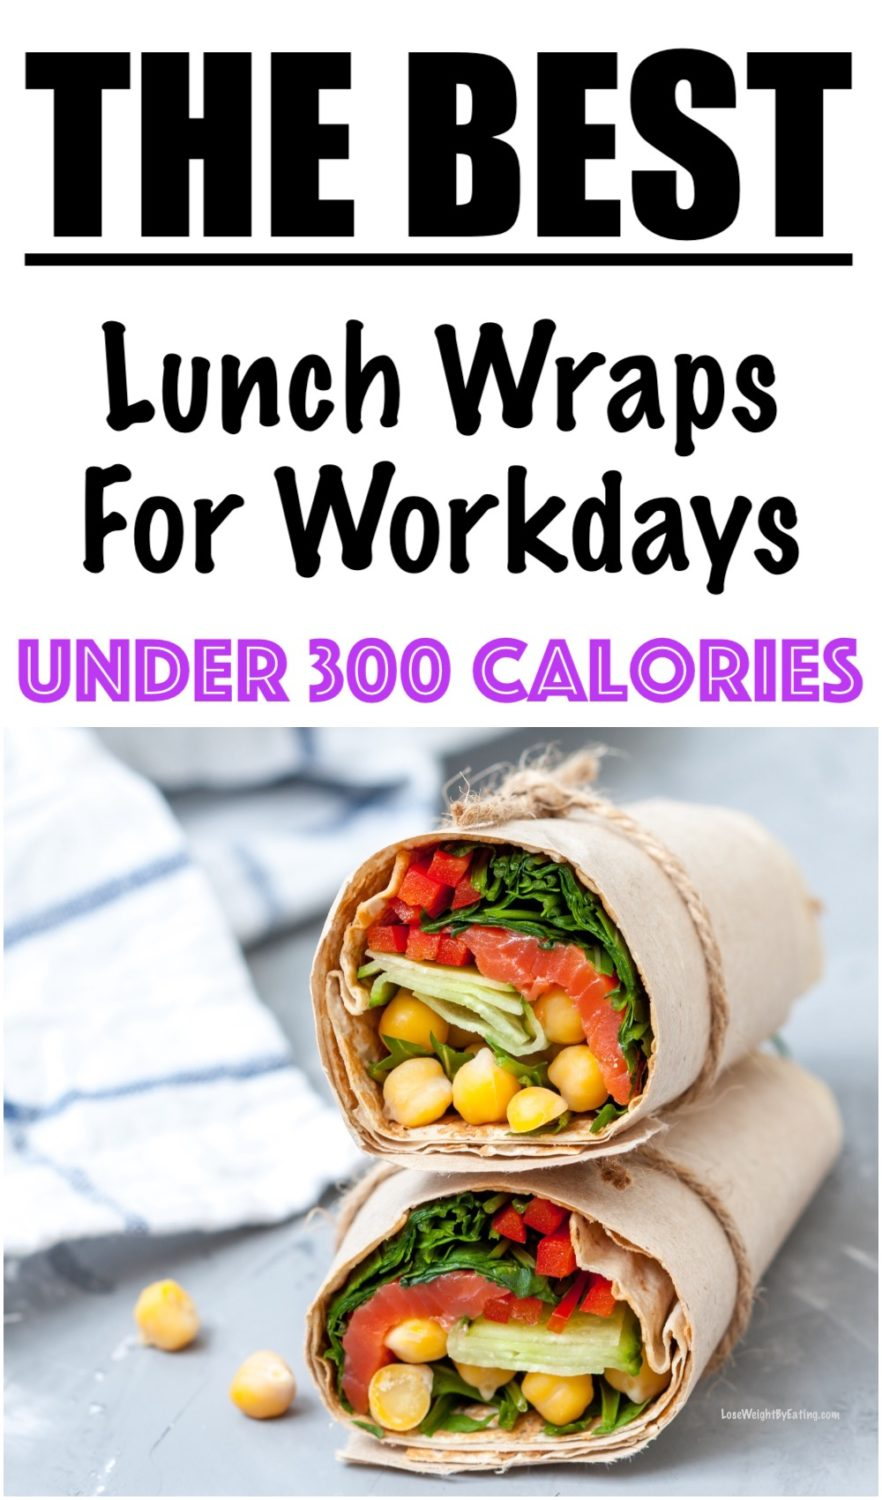 Healthy Lunch Wrap Recipe With Chickpeas